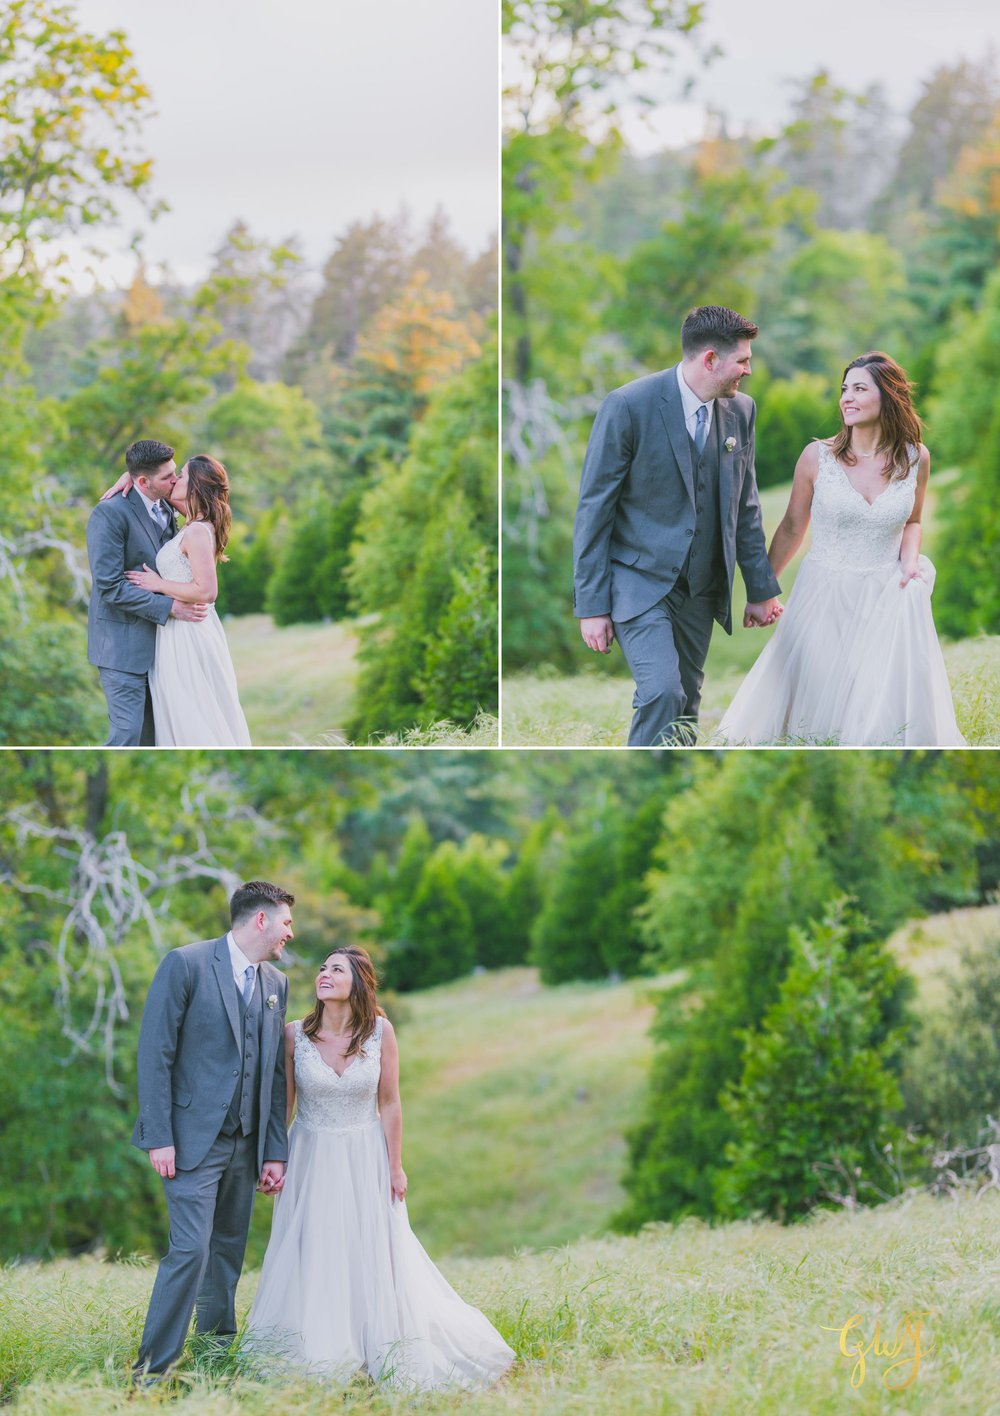 Allison + Jared Southern California Mountain Thousand Pines Christian Camp Wedding by Glass Woods Media 47.jpg